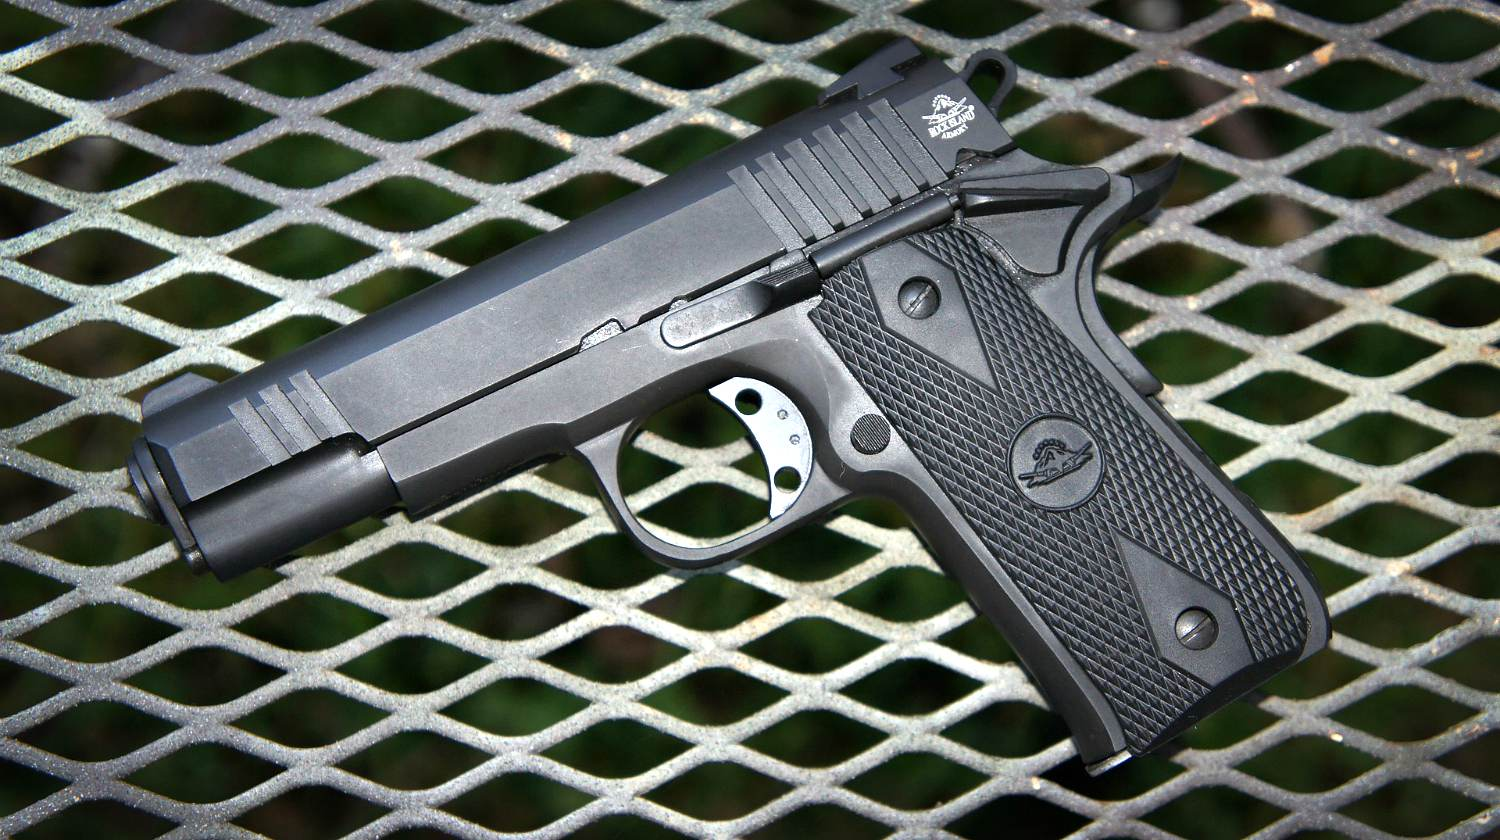 Feature | 9mm pistol handgun | Best Low-Cost Pistol Options For Your Budget